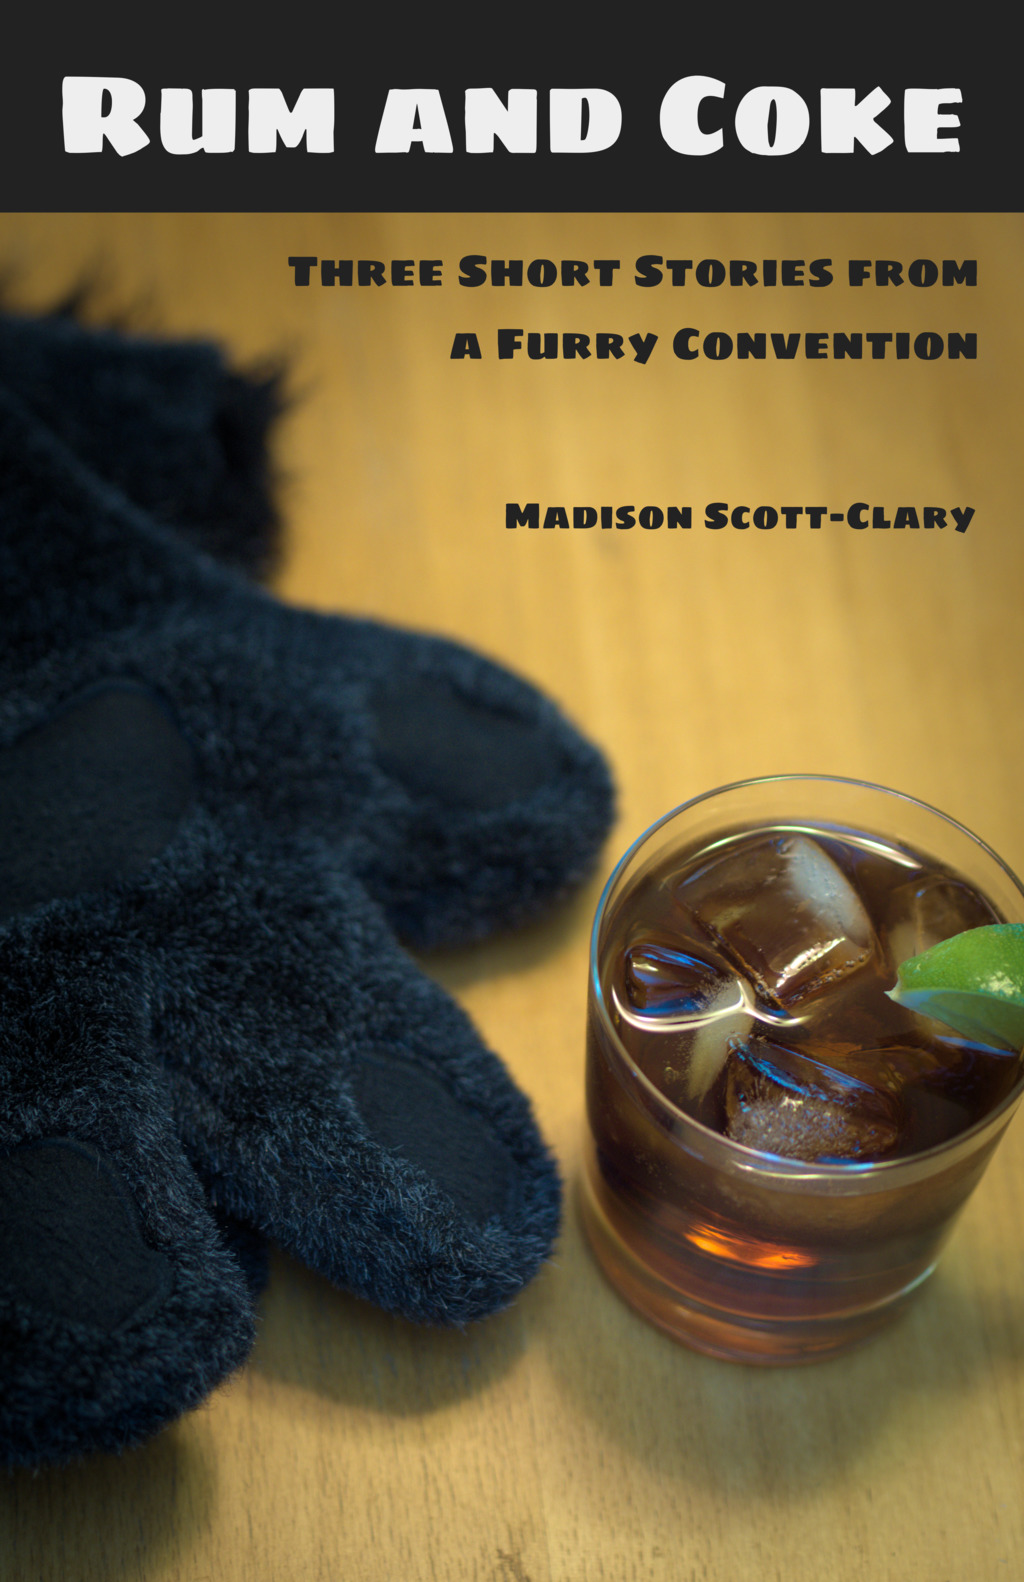 Rum and Coke – Three Short Stories from a Furry Convention